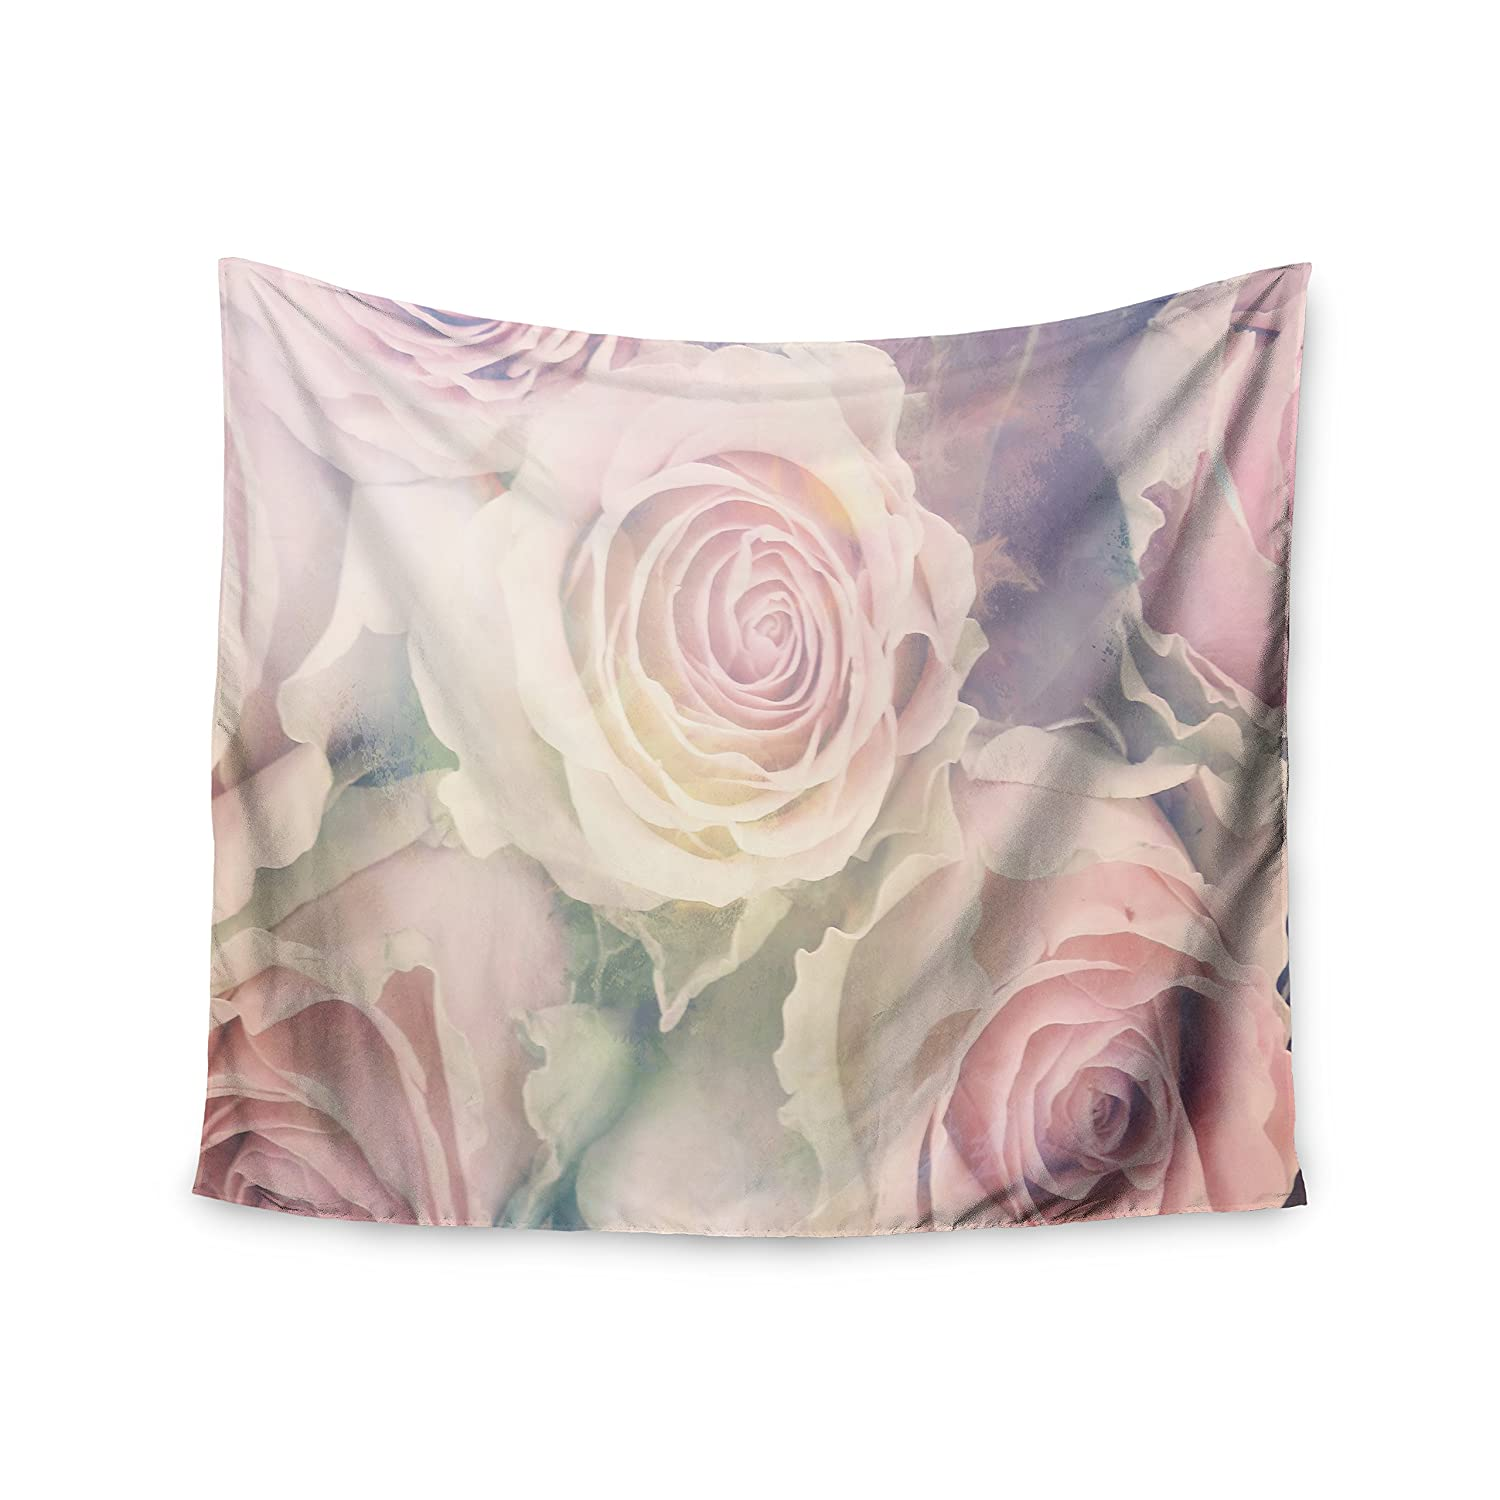 51 x 60 Kess InHouse Suzanne Carter Faded Beauty Blush Floral Wall Tapestry